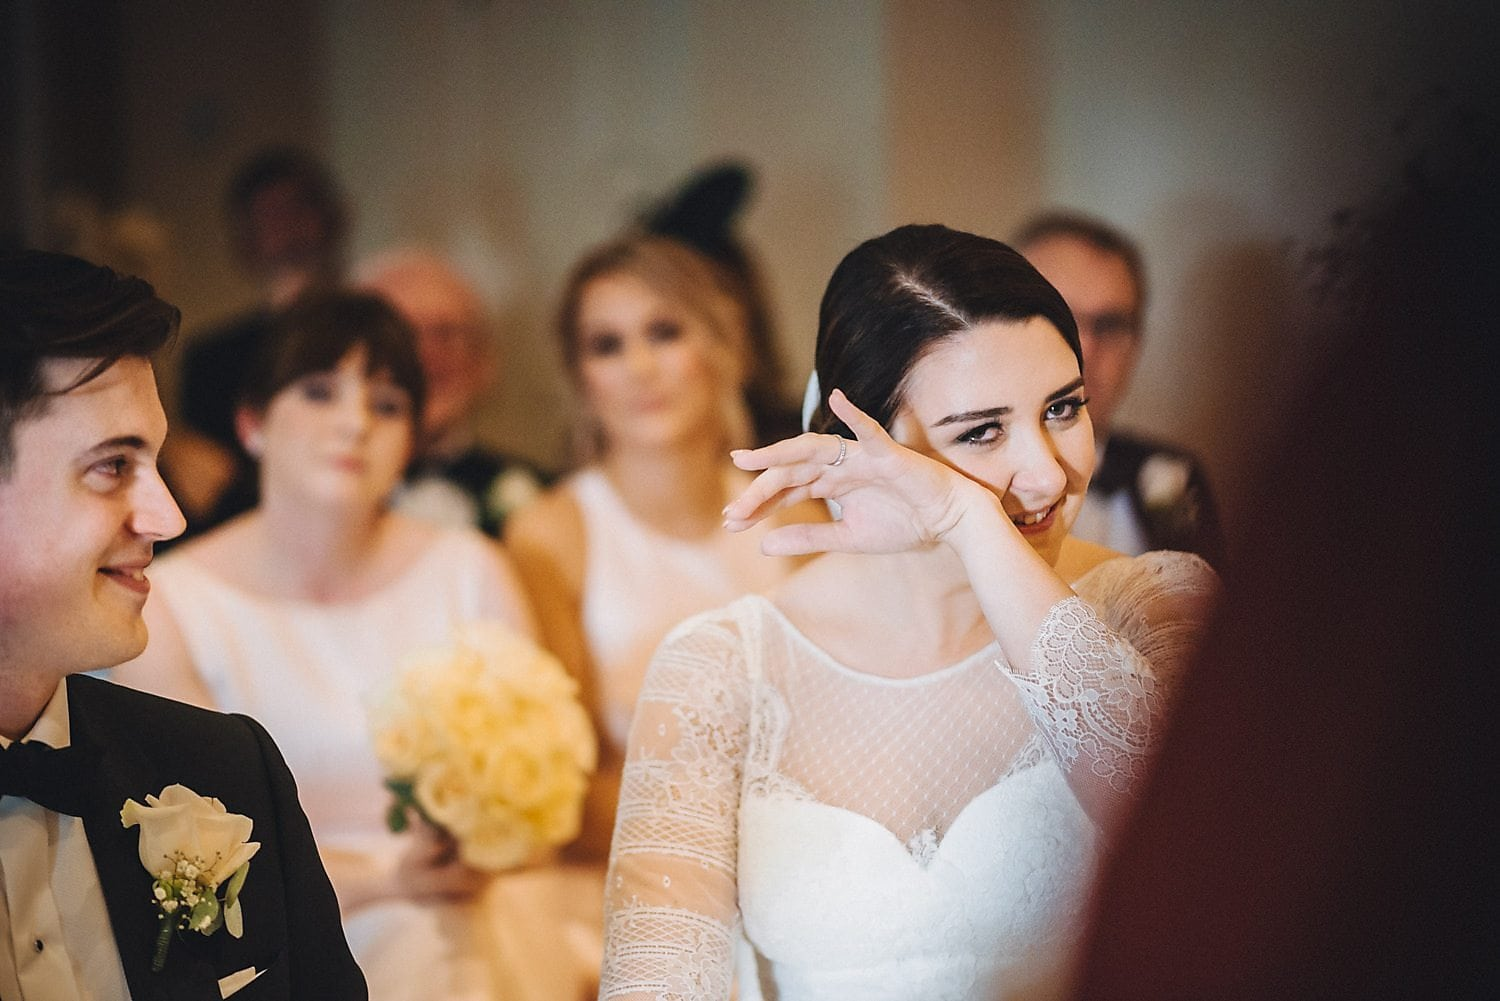 Bride wipes happy tears away